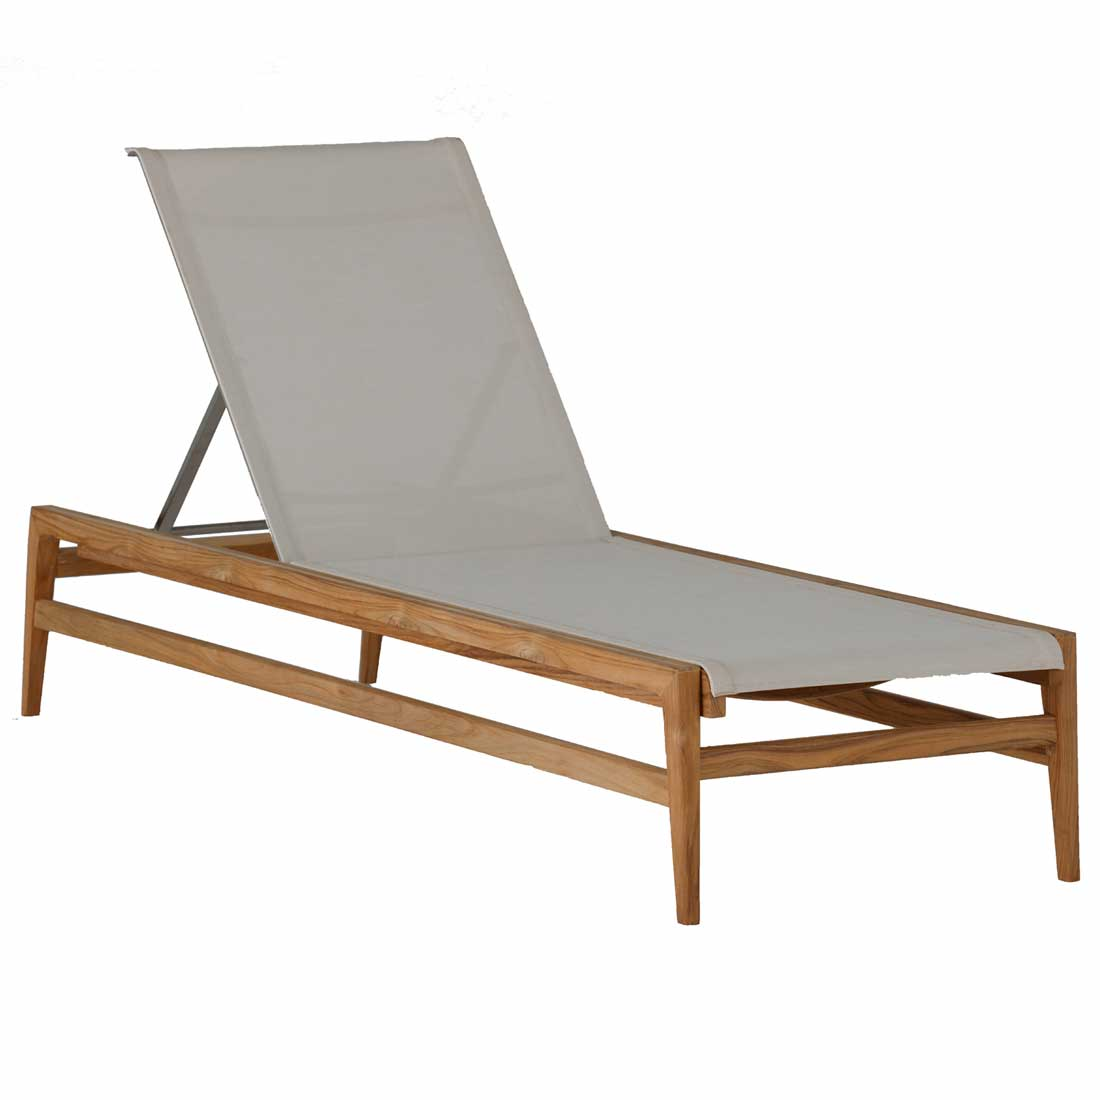 Teak Chaise Lounge Chairs Coast Teak Chaise Lounge Summer Classics